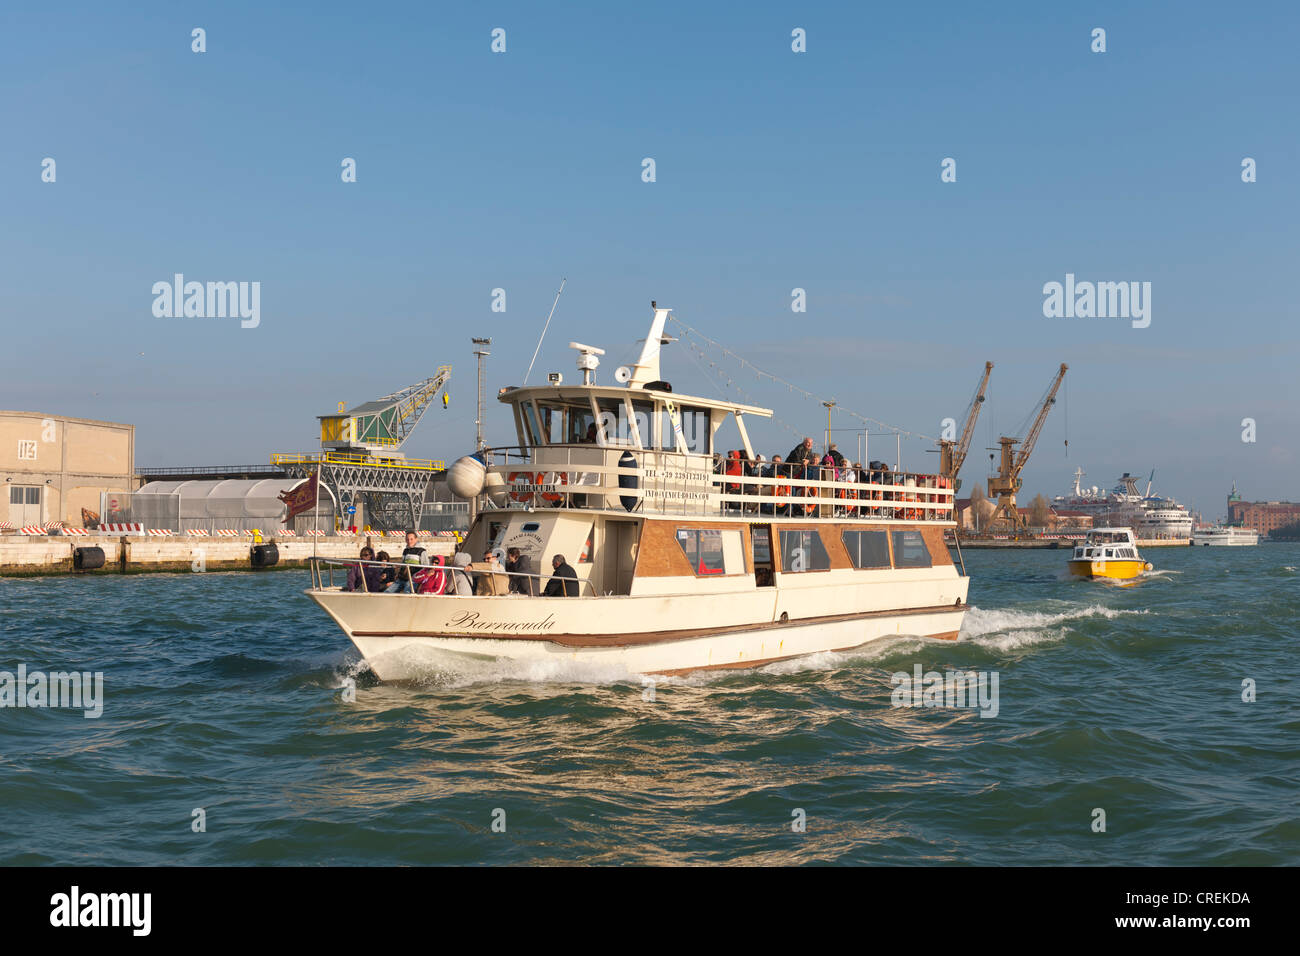 Vaporetto ferry connect all the islands in the lagoon, Venice, Veneto, Italy, Southern Europe - Stock Image